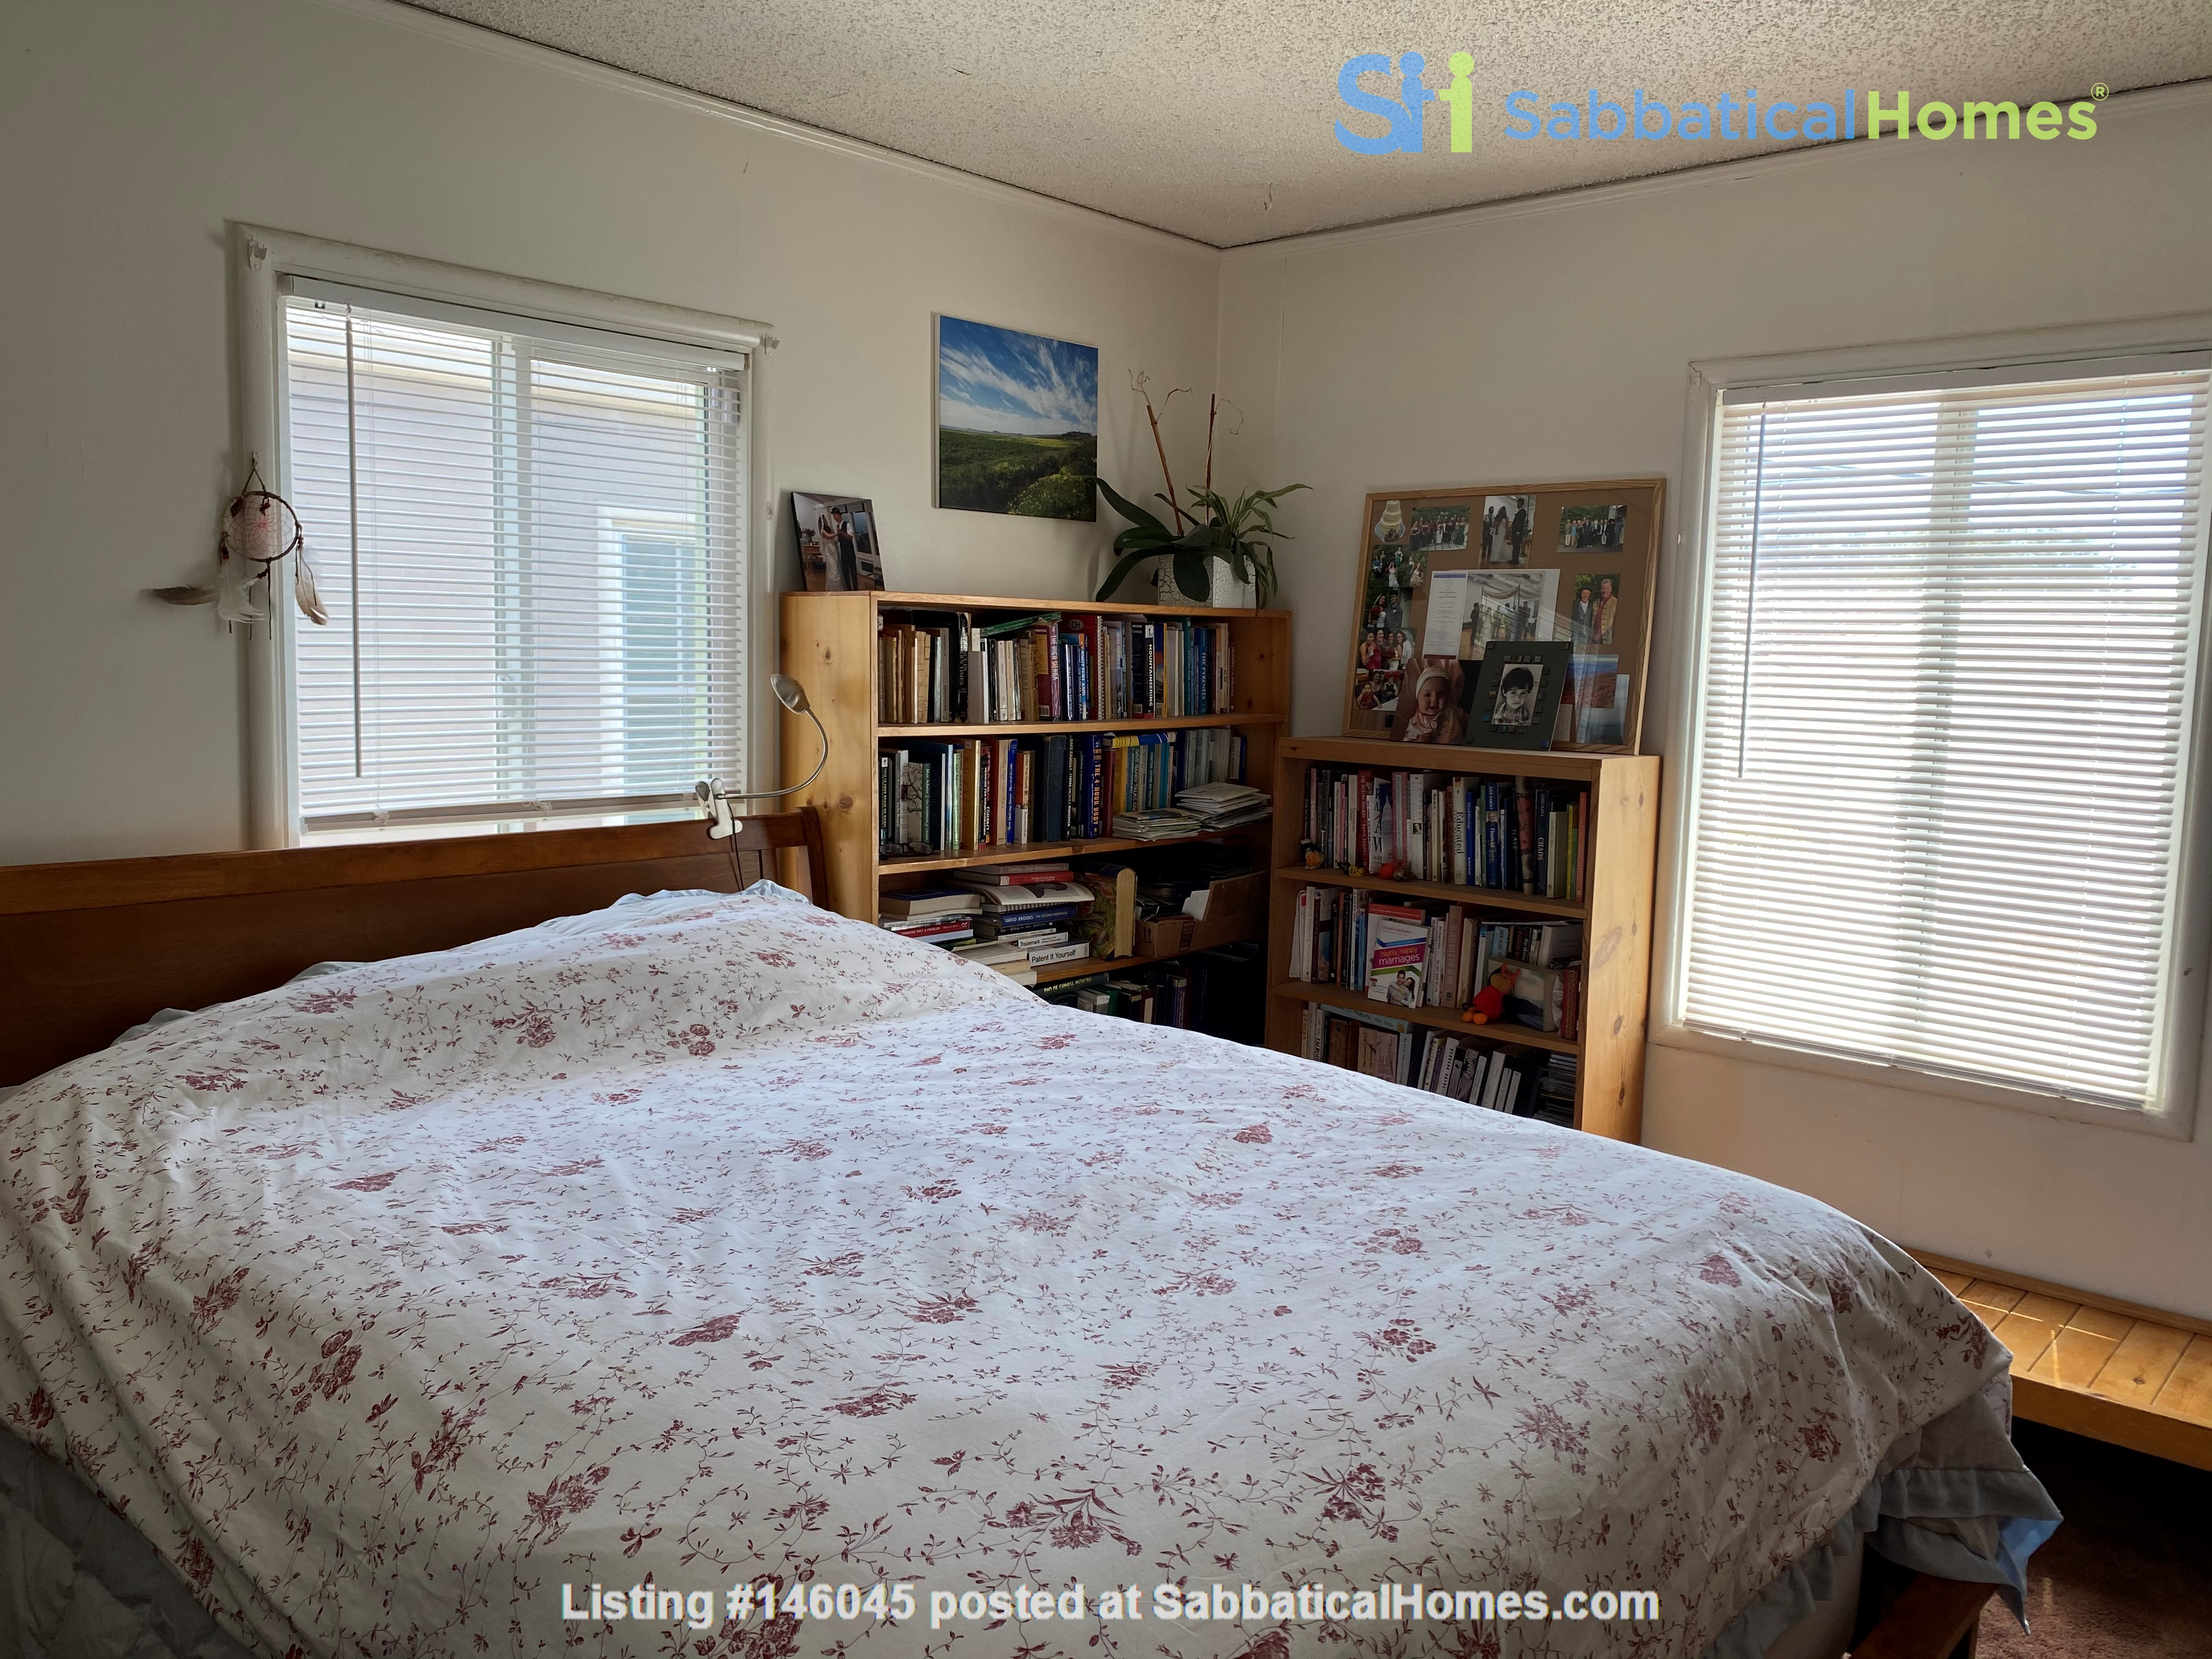 Single family home with lovely garden and hot tub in walkable neighborhood! Home Rental in El Cerrito 0